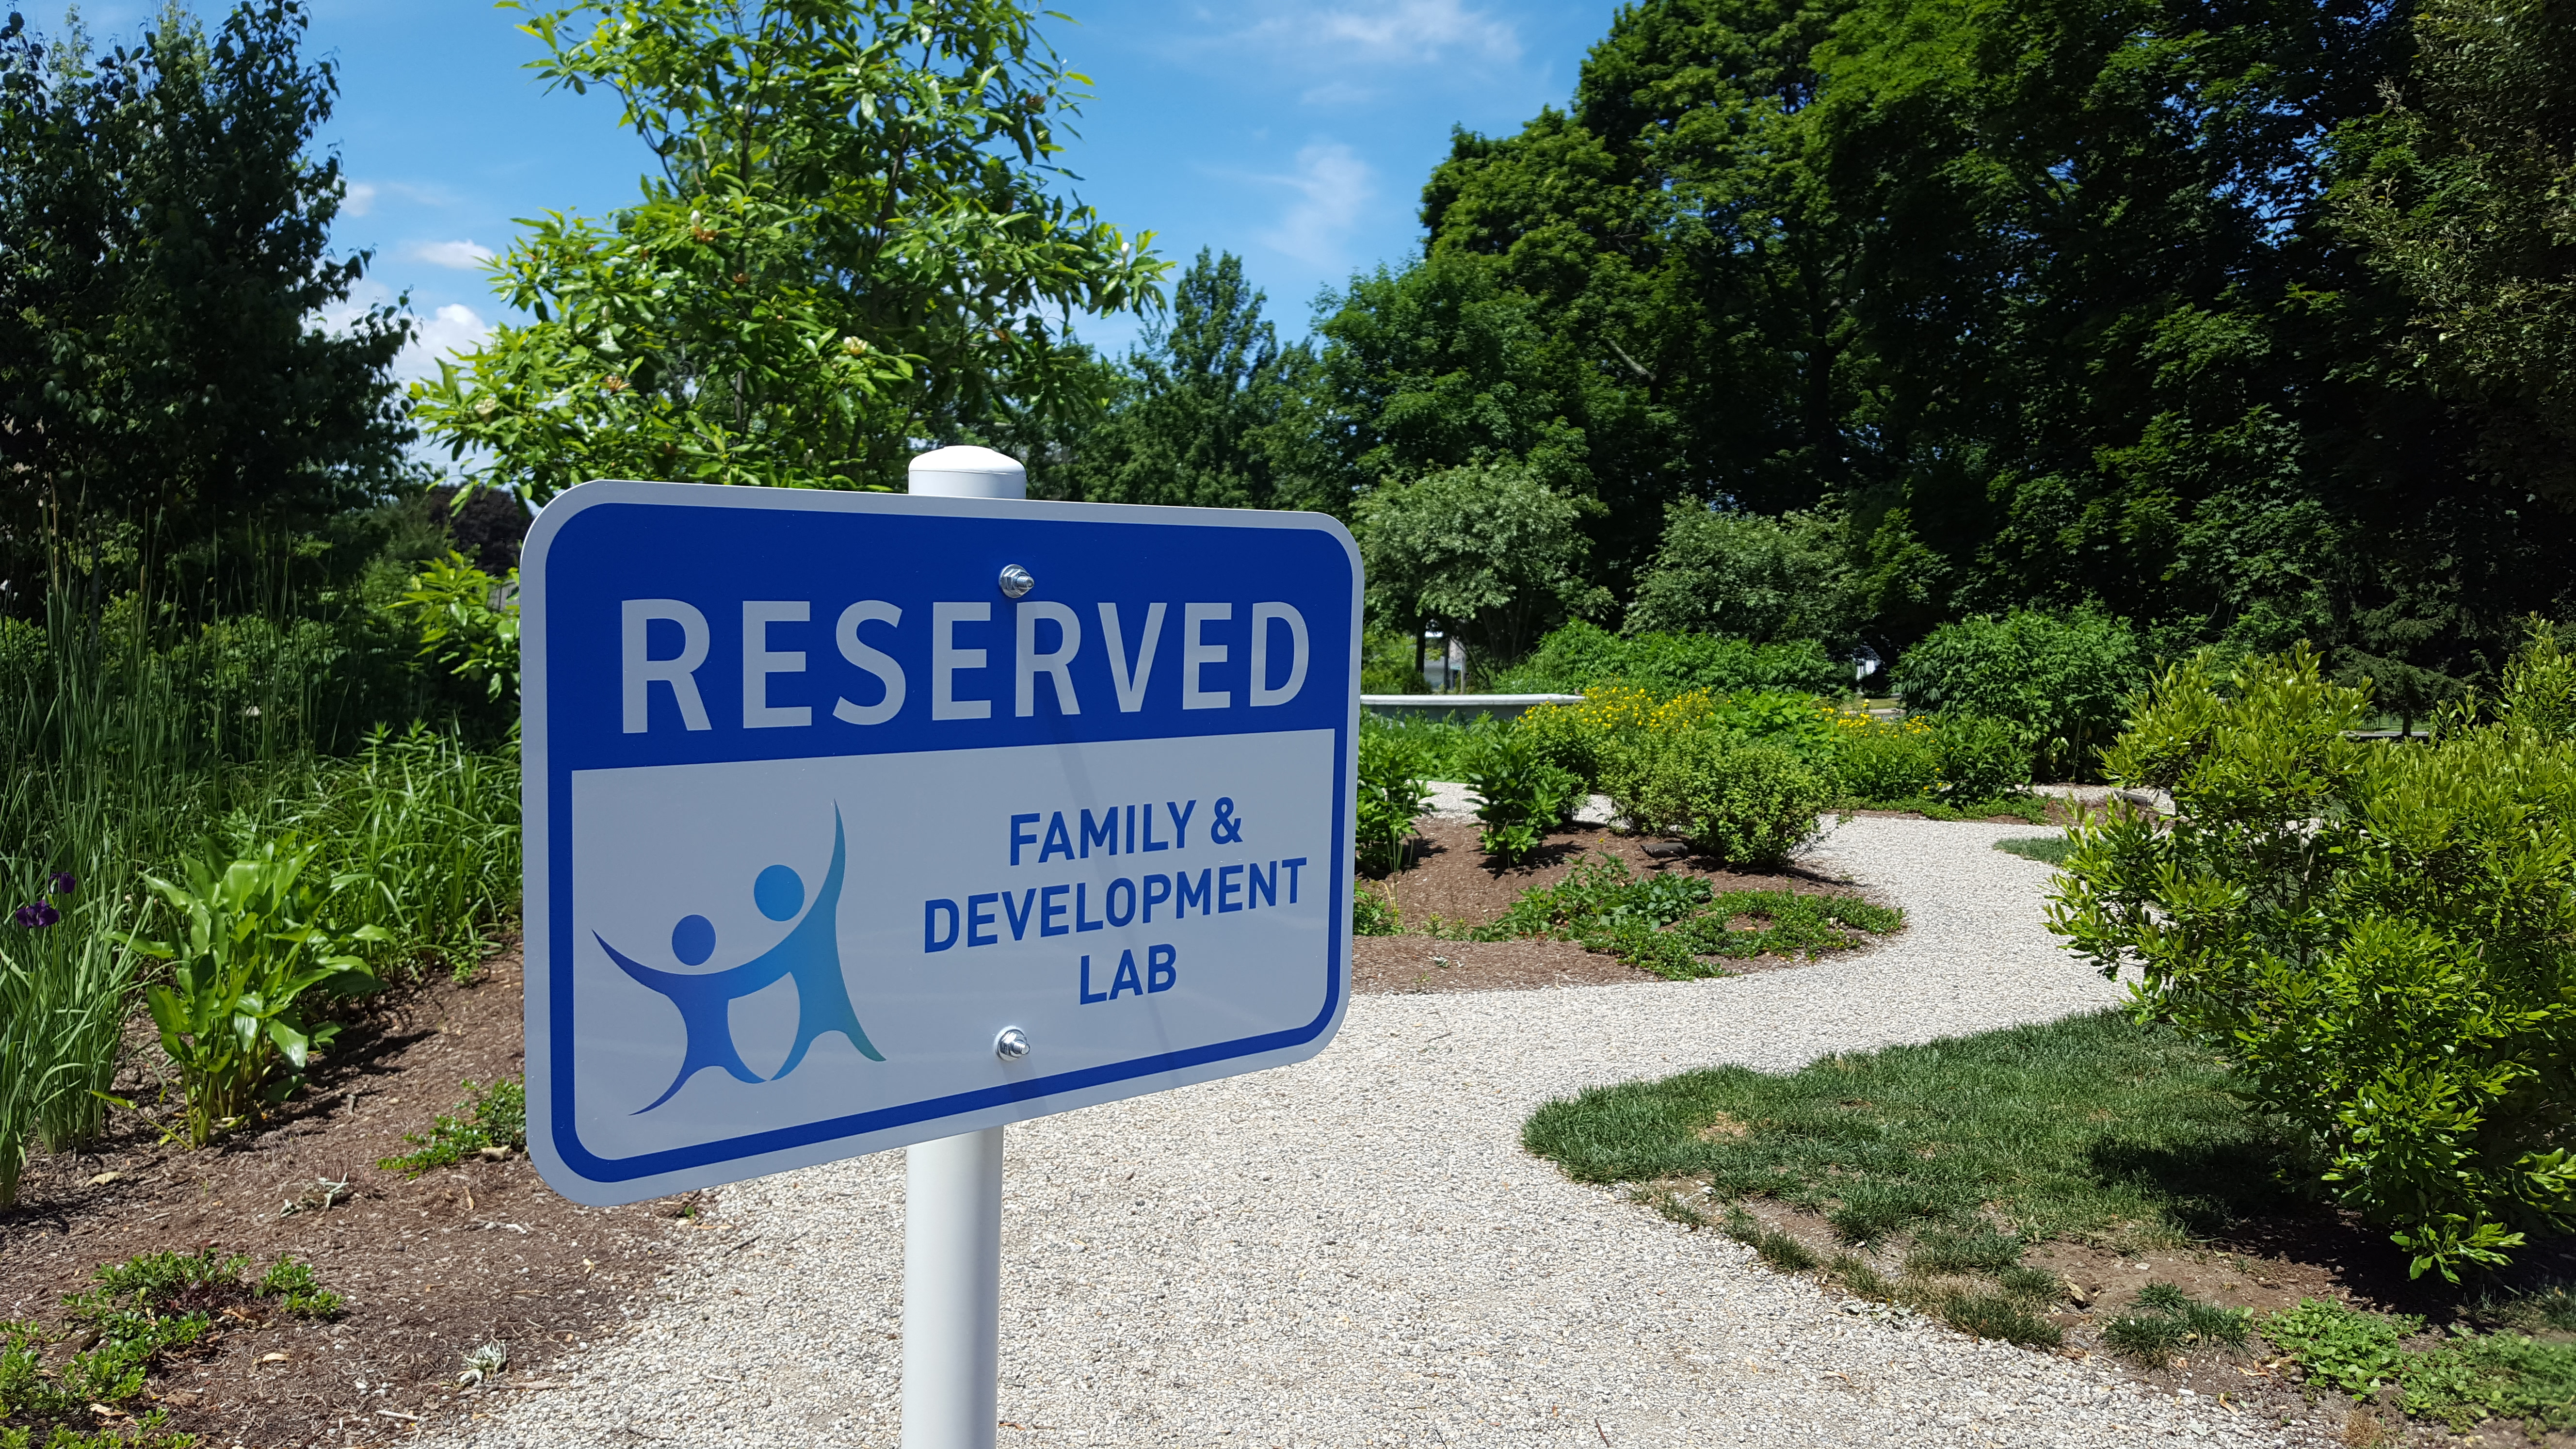 Learn more about the Family & Development Lab!